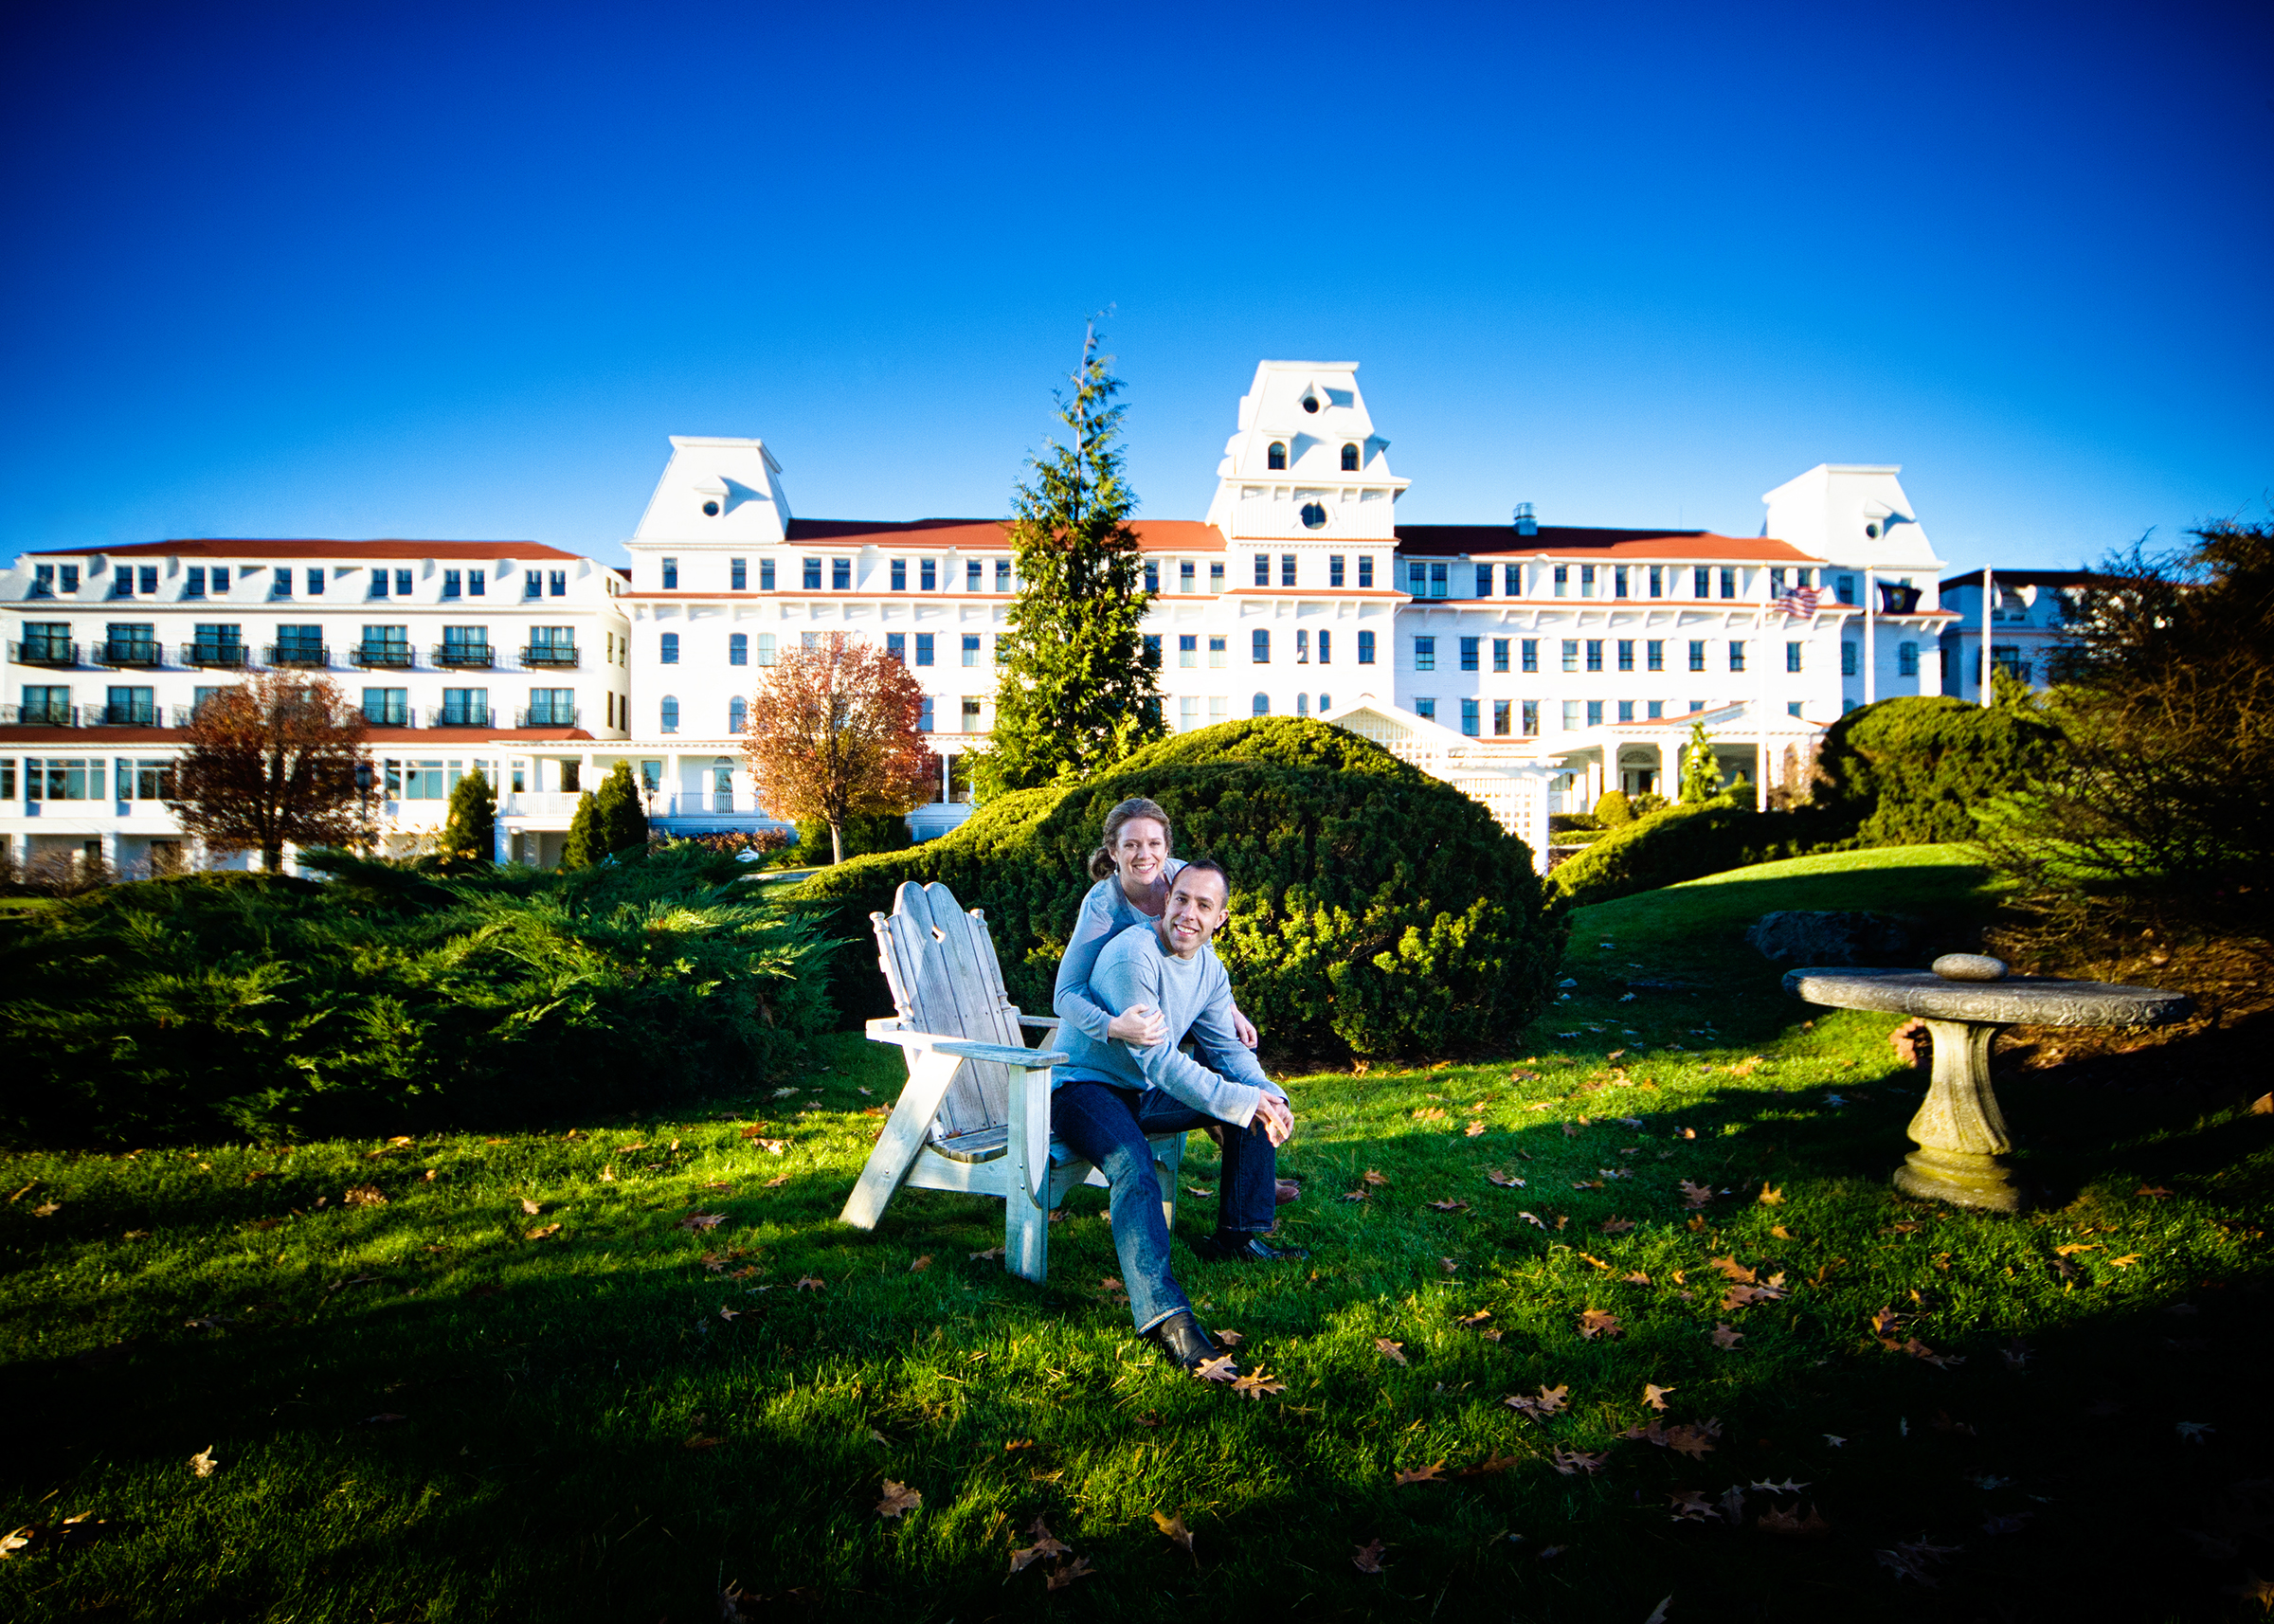 Engagement Pictures at the Wentworth by the Sea